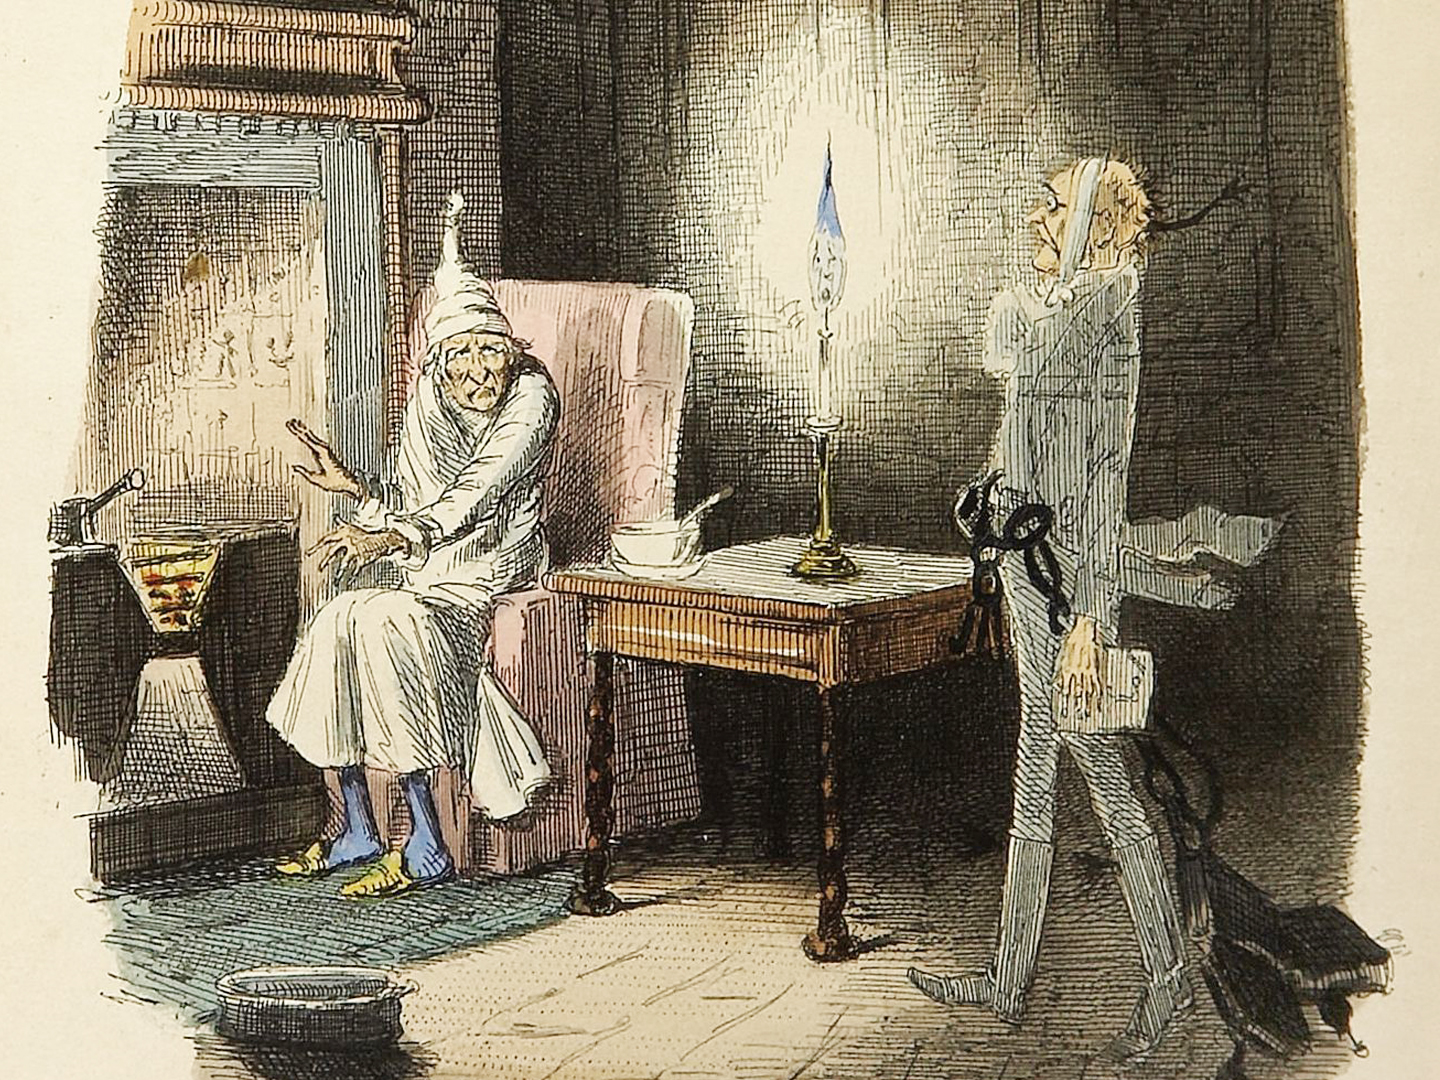 Illustration of Scrooge in his signature nightshirt and cap sitting in a red armchair near a fireplace. Scrooge wears a frightened expression as the ghost of his former business partner, Jacob Marley, visits him in the middle of the night, wrapped in heavy chains.